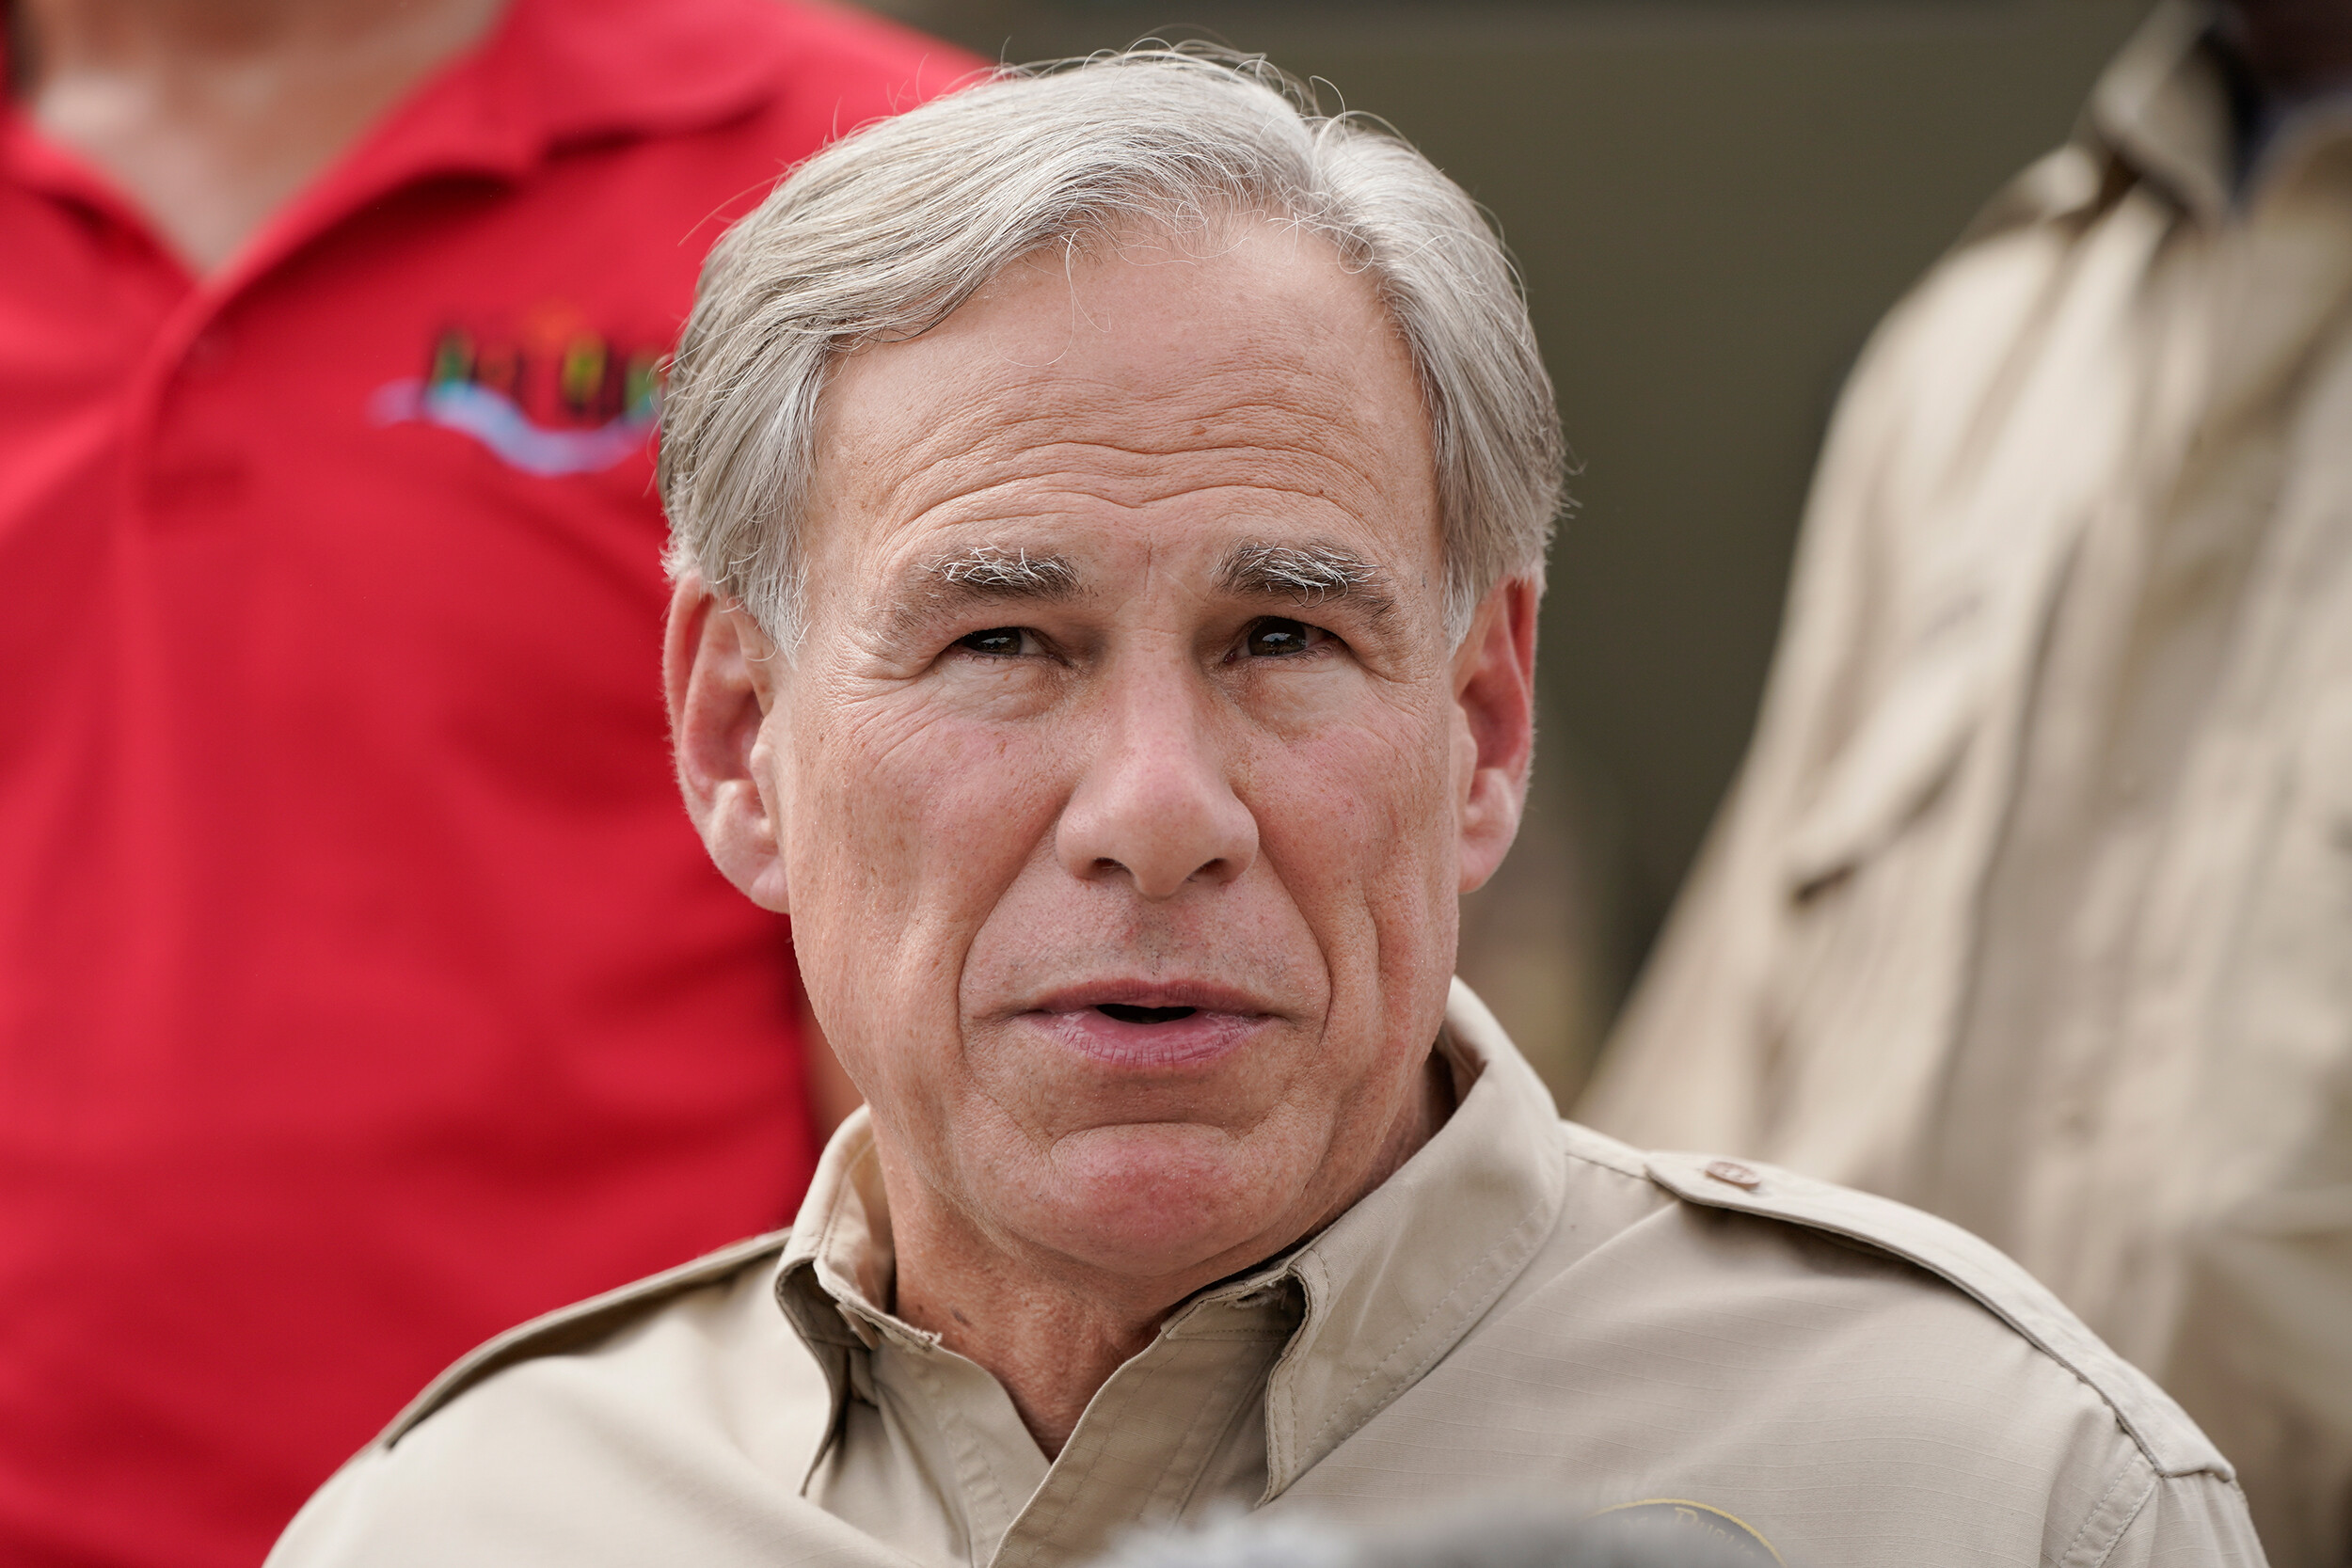 <i>Julio Cortez/AP/FILE</i><br/>Texas Gov. Greg Abbott on Monday issued an executive order banning all state entities